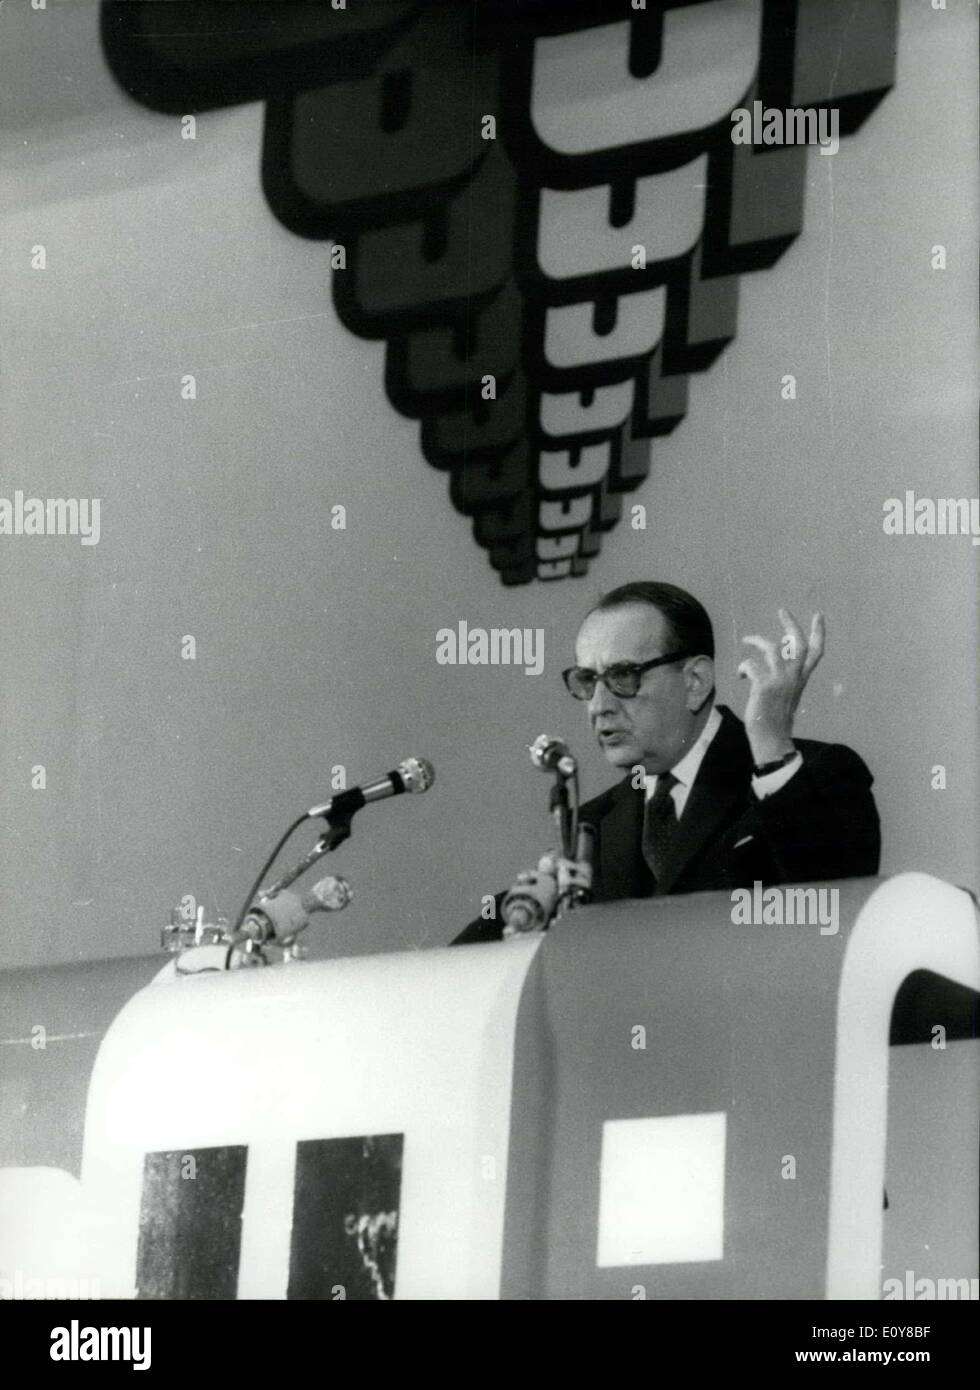 Search Results For Apr 24 1969 Referendum Stock Photos And Images